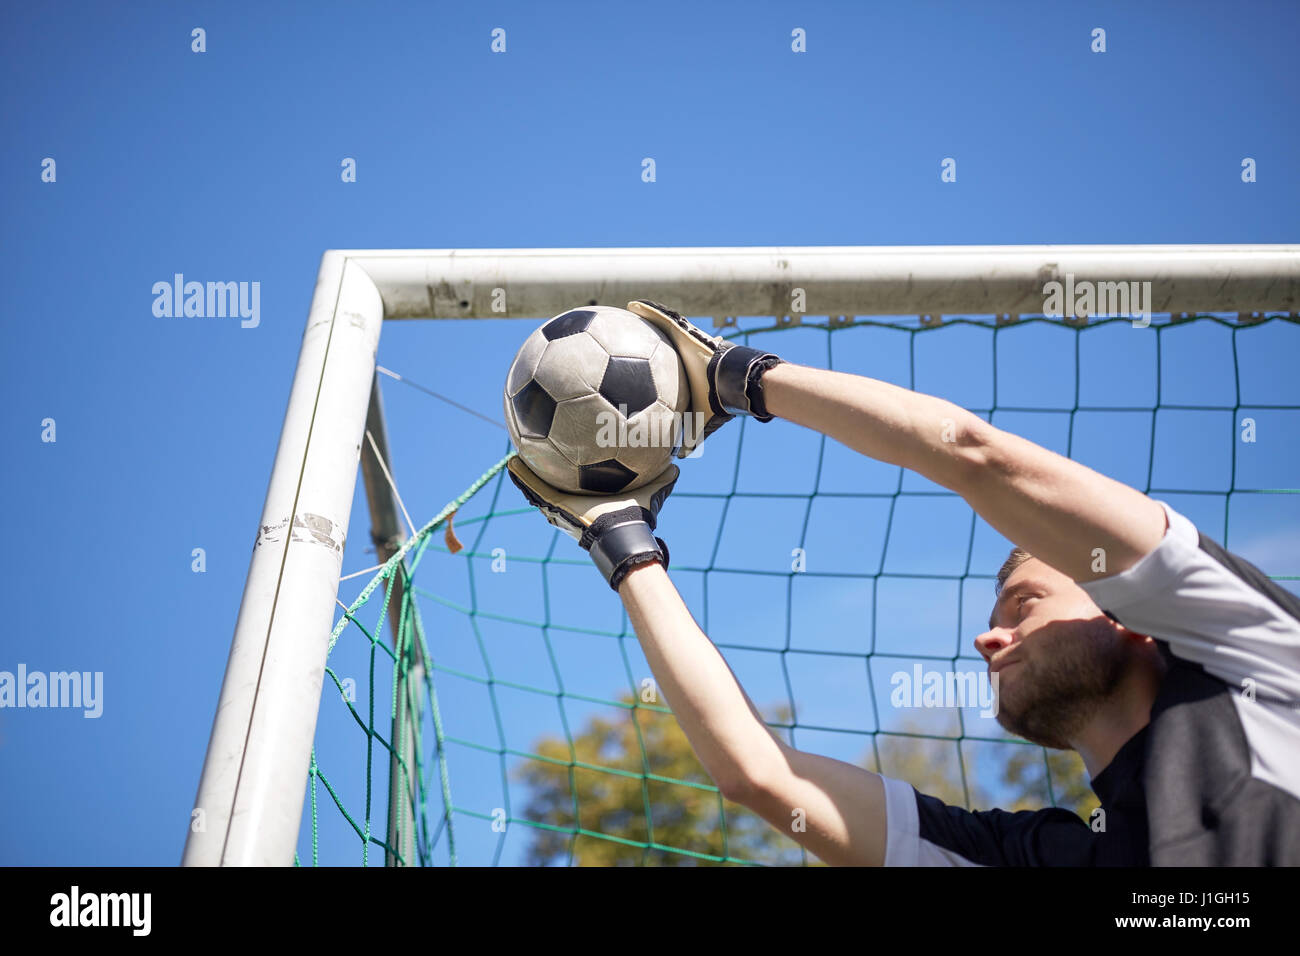 goalkeeper with ball at football goal on field - Stock Image